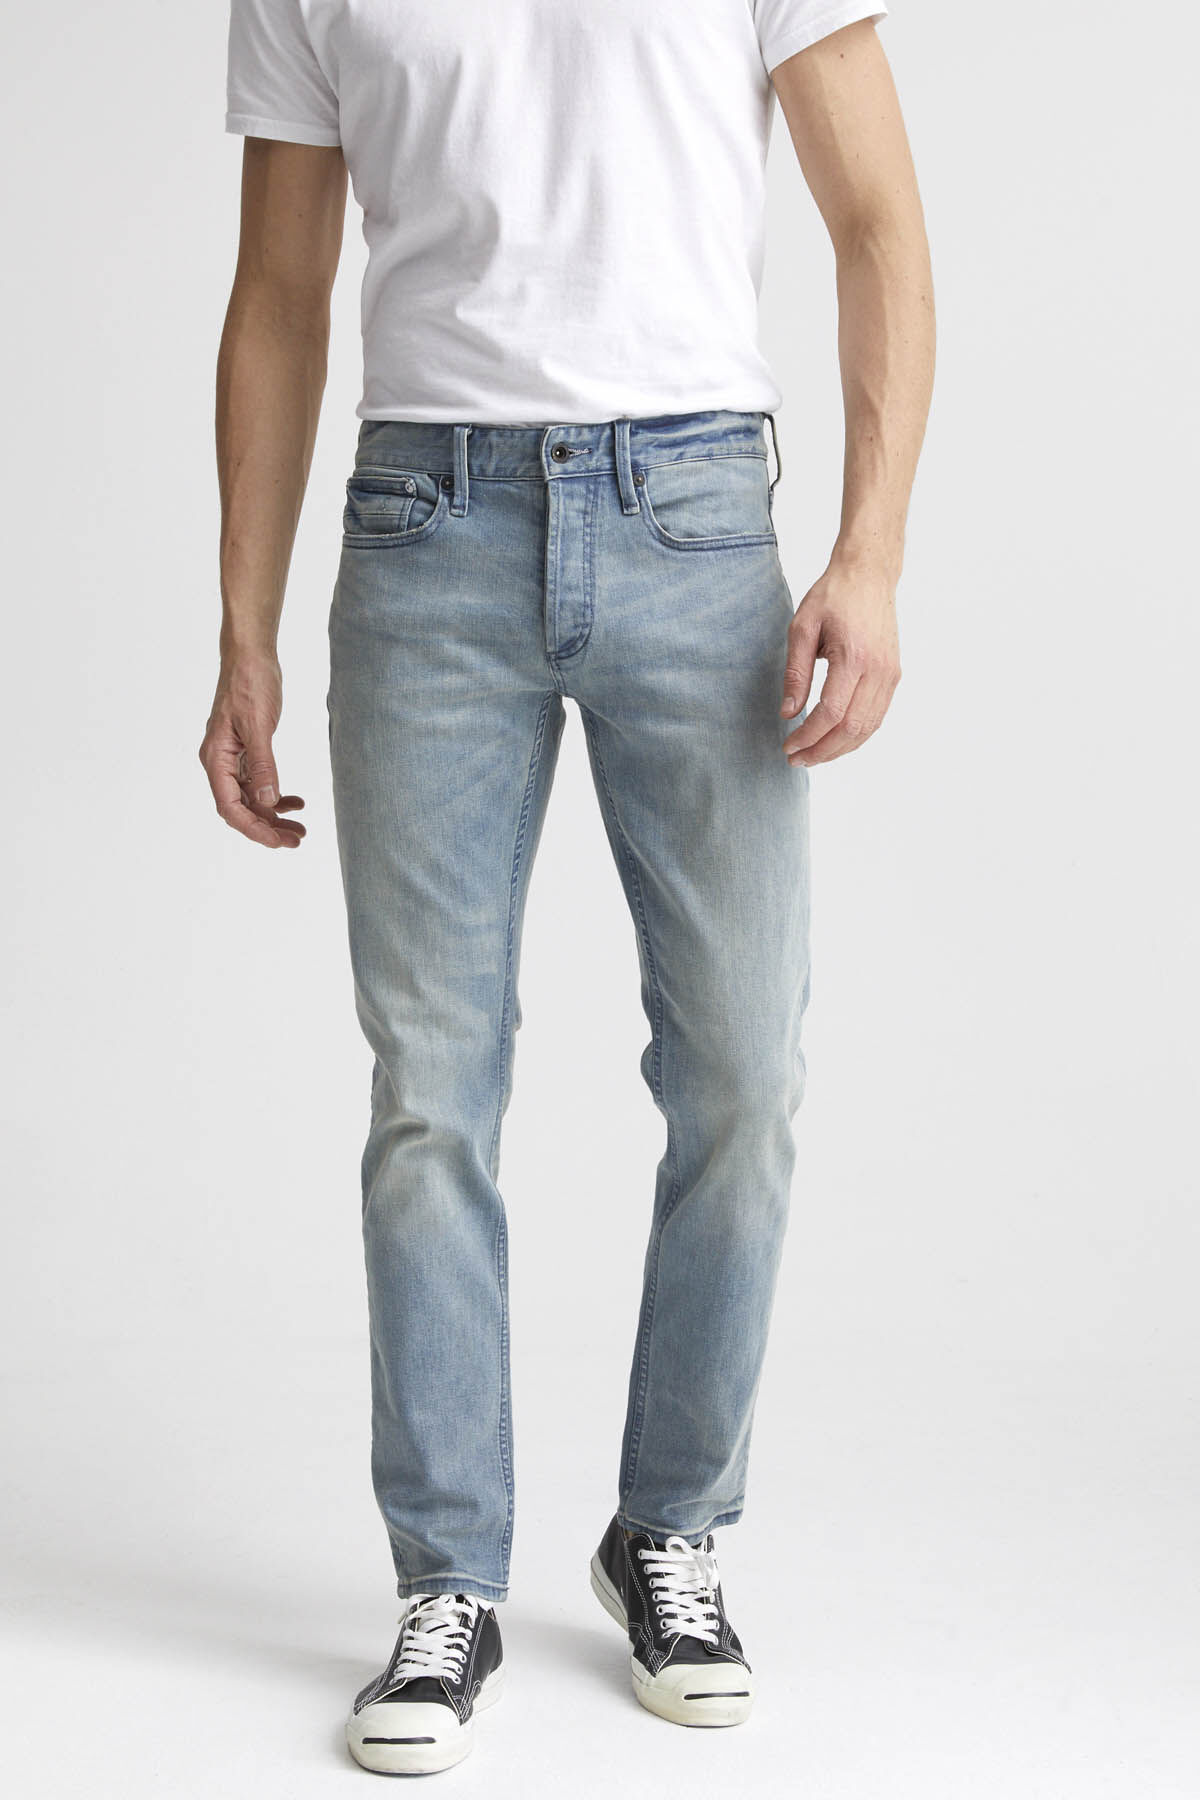 RAZOR Faded Indigo Denim - Slim Fit